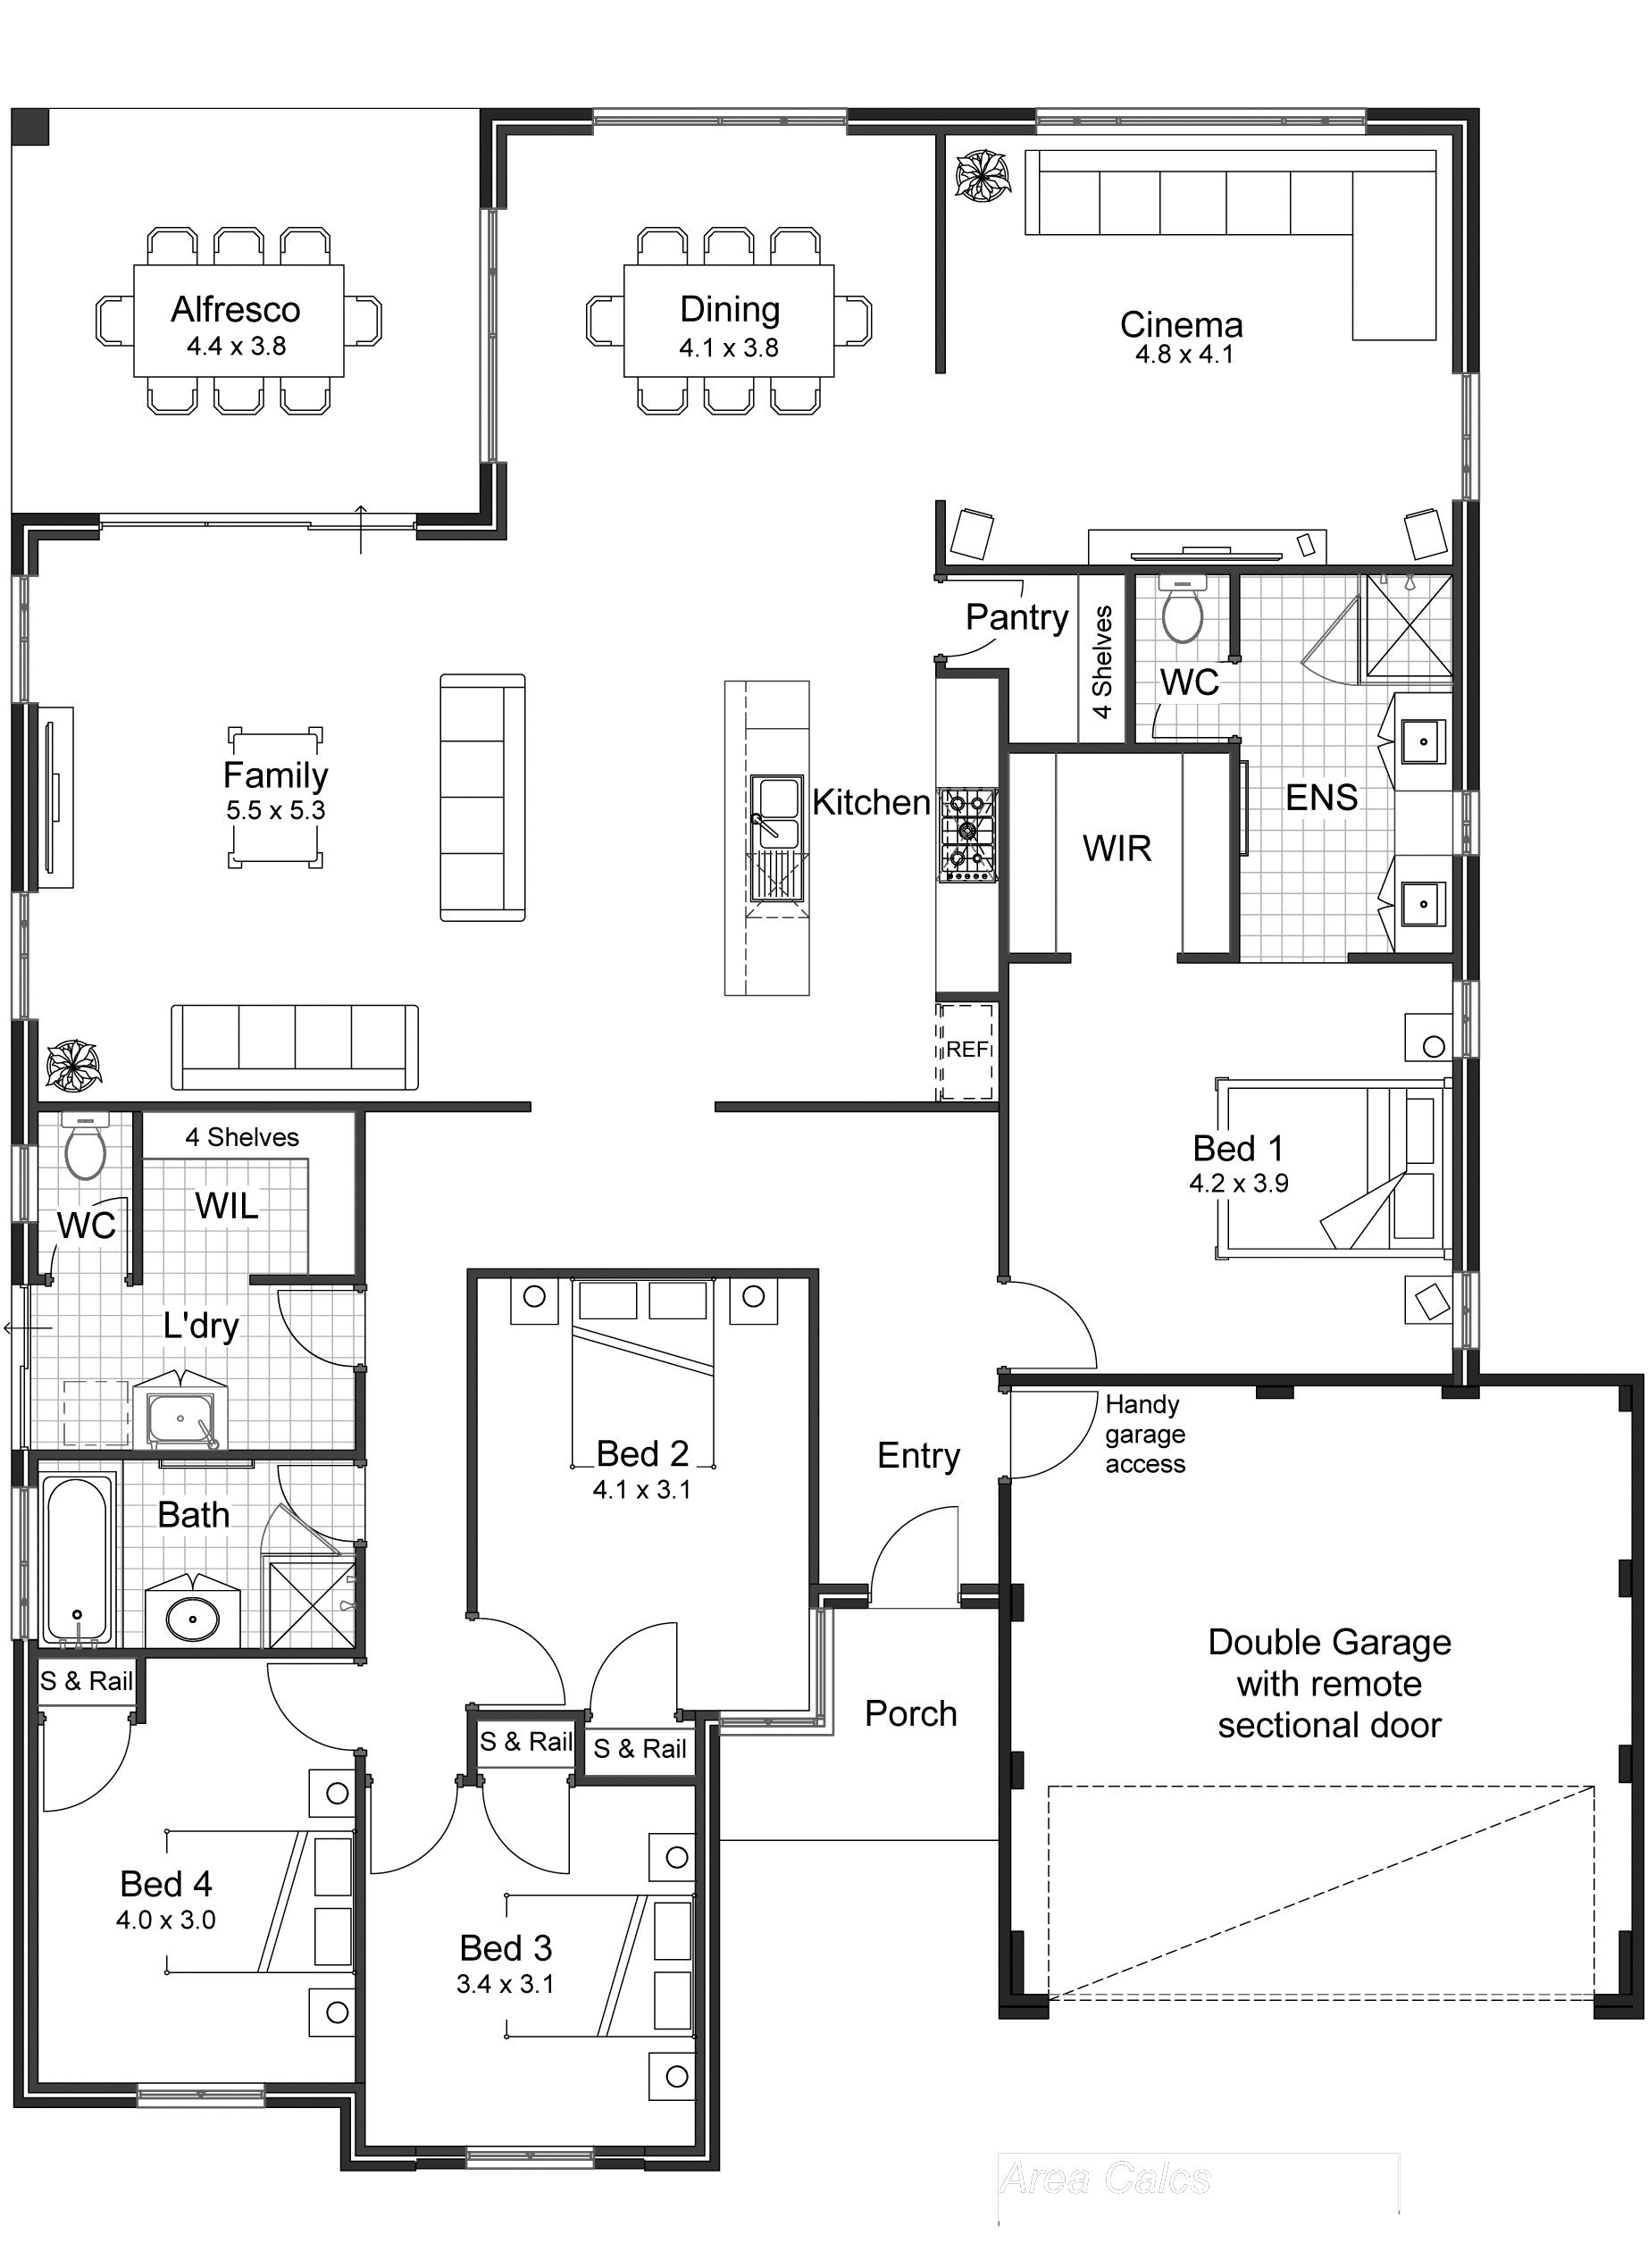 Creative open floor plans homes inspirational home for House plans with large kitchen and family room